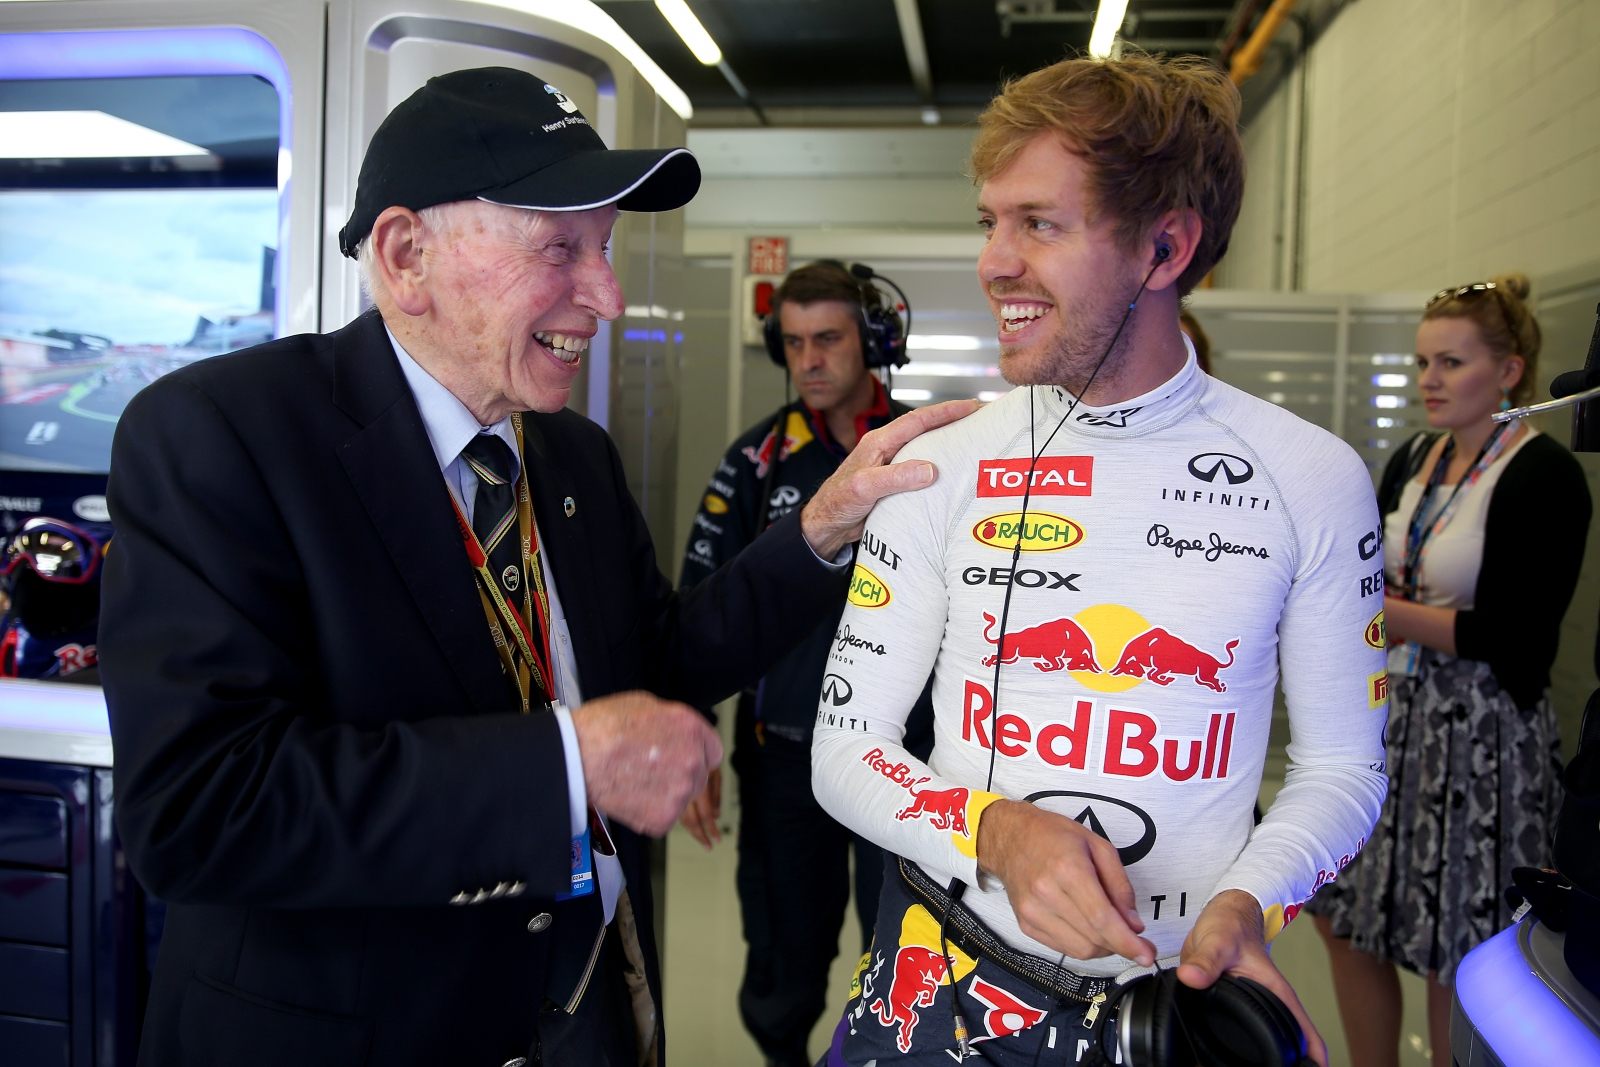 John Surtees, F1 and Motorcycle Racing Hero, Dies at 83